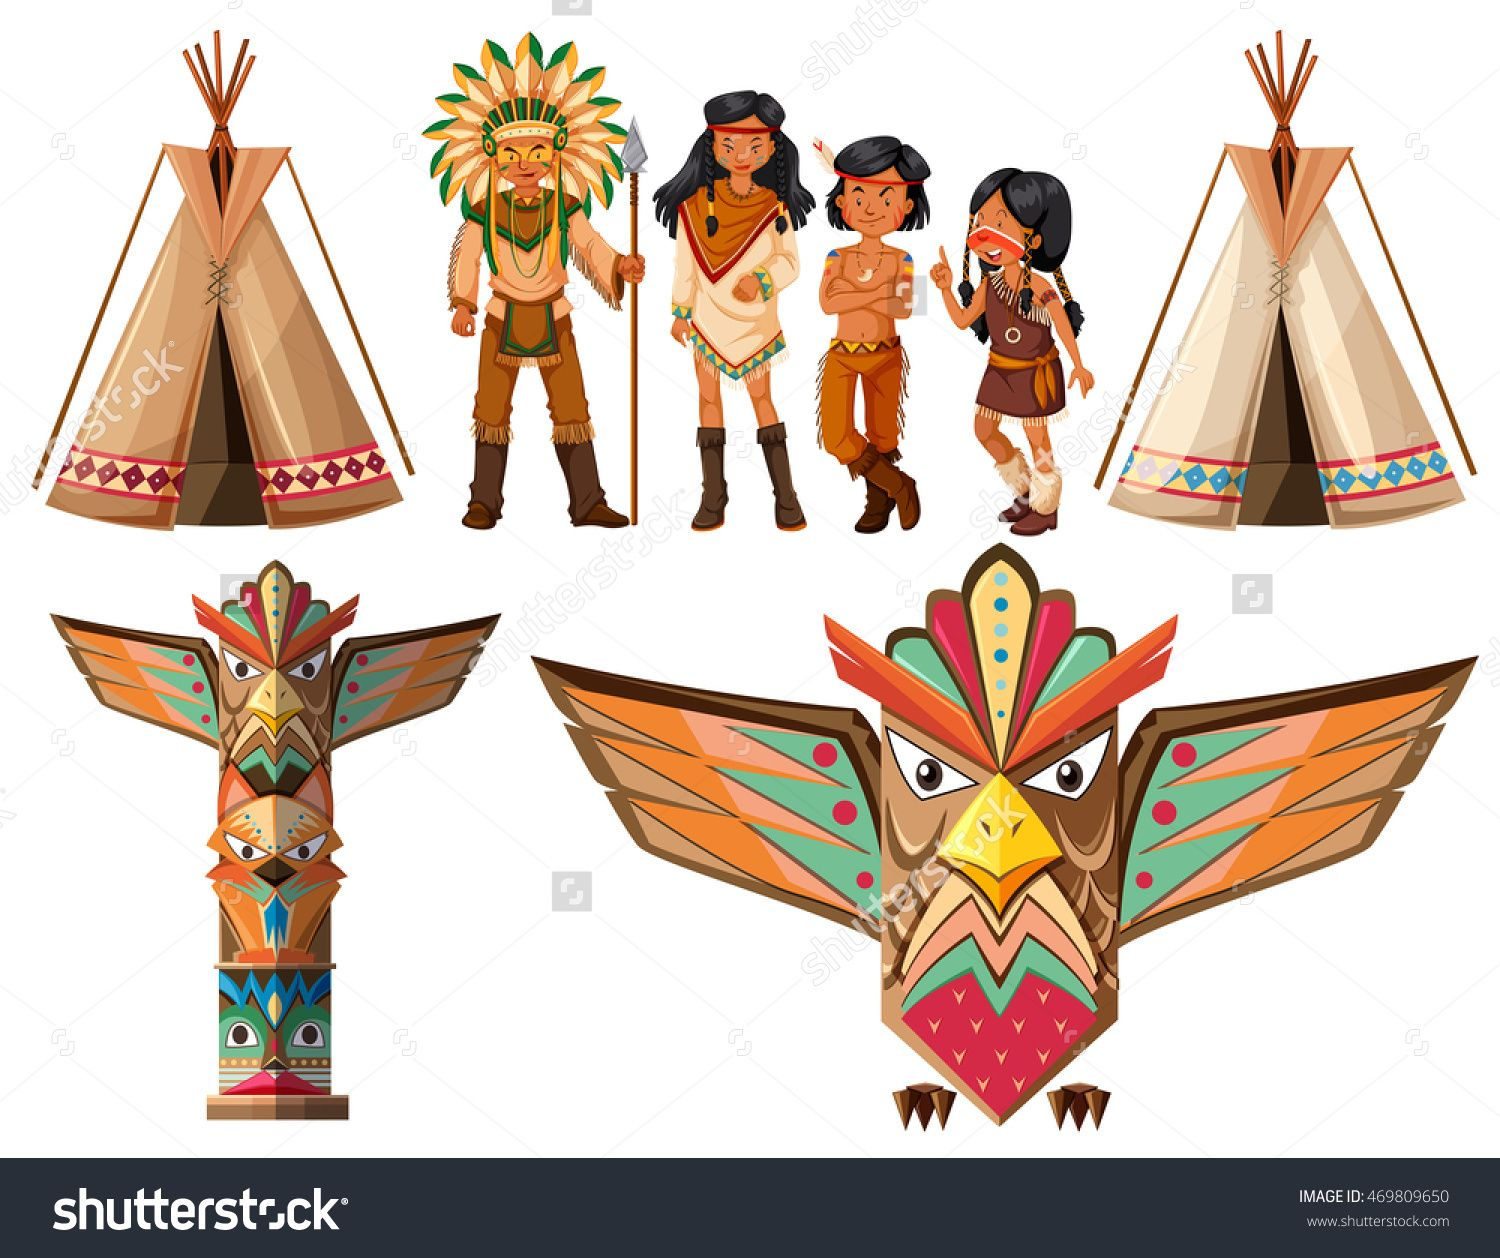 Native American Indians And Tepee Illustration - 469809650 : Shutterstock